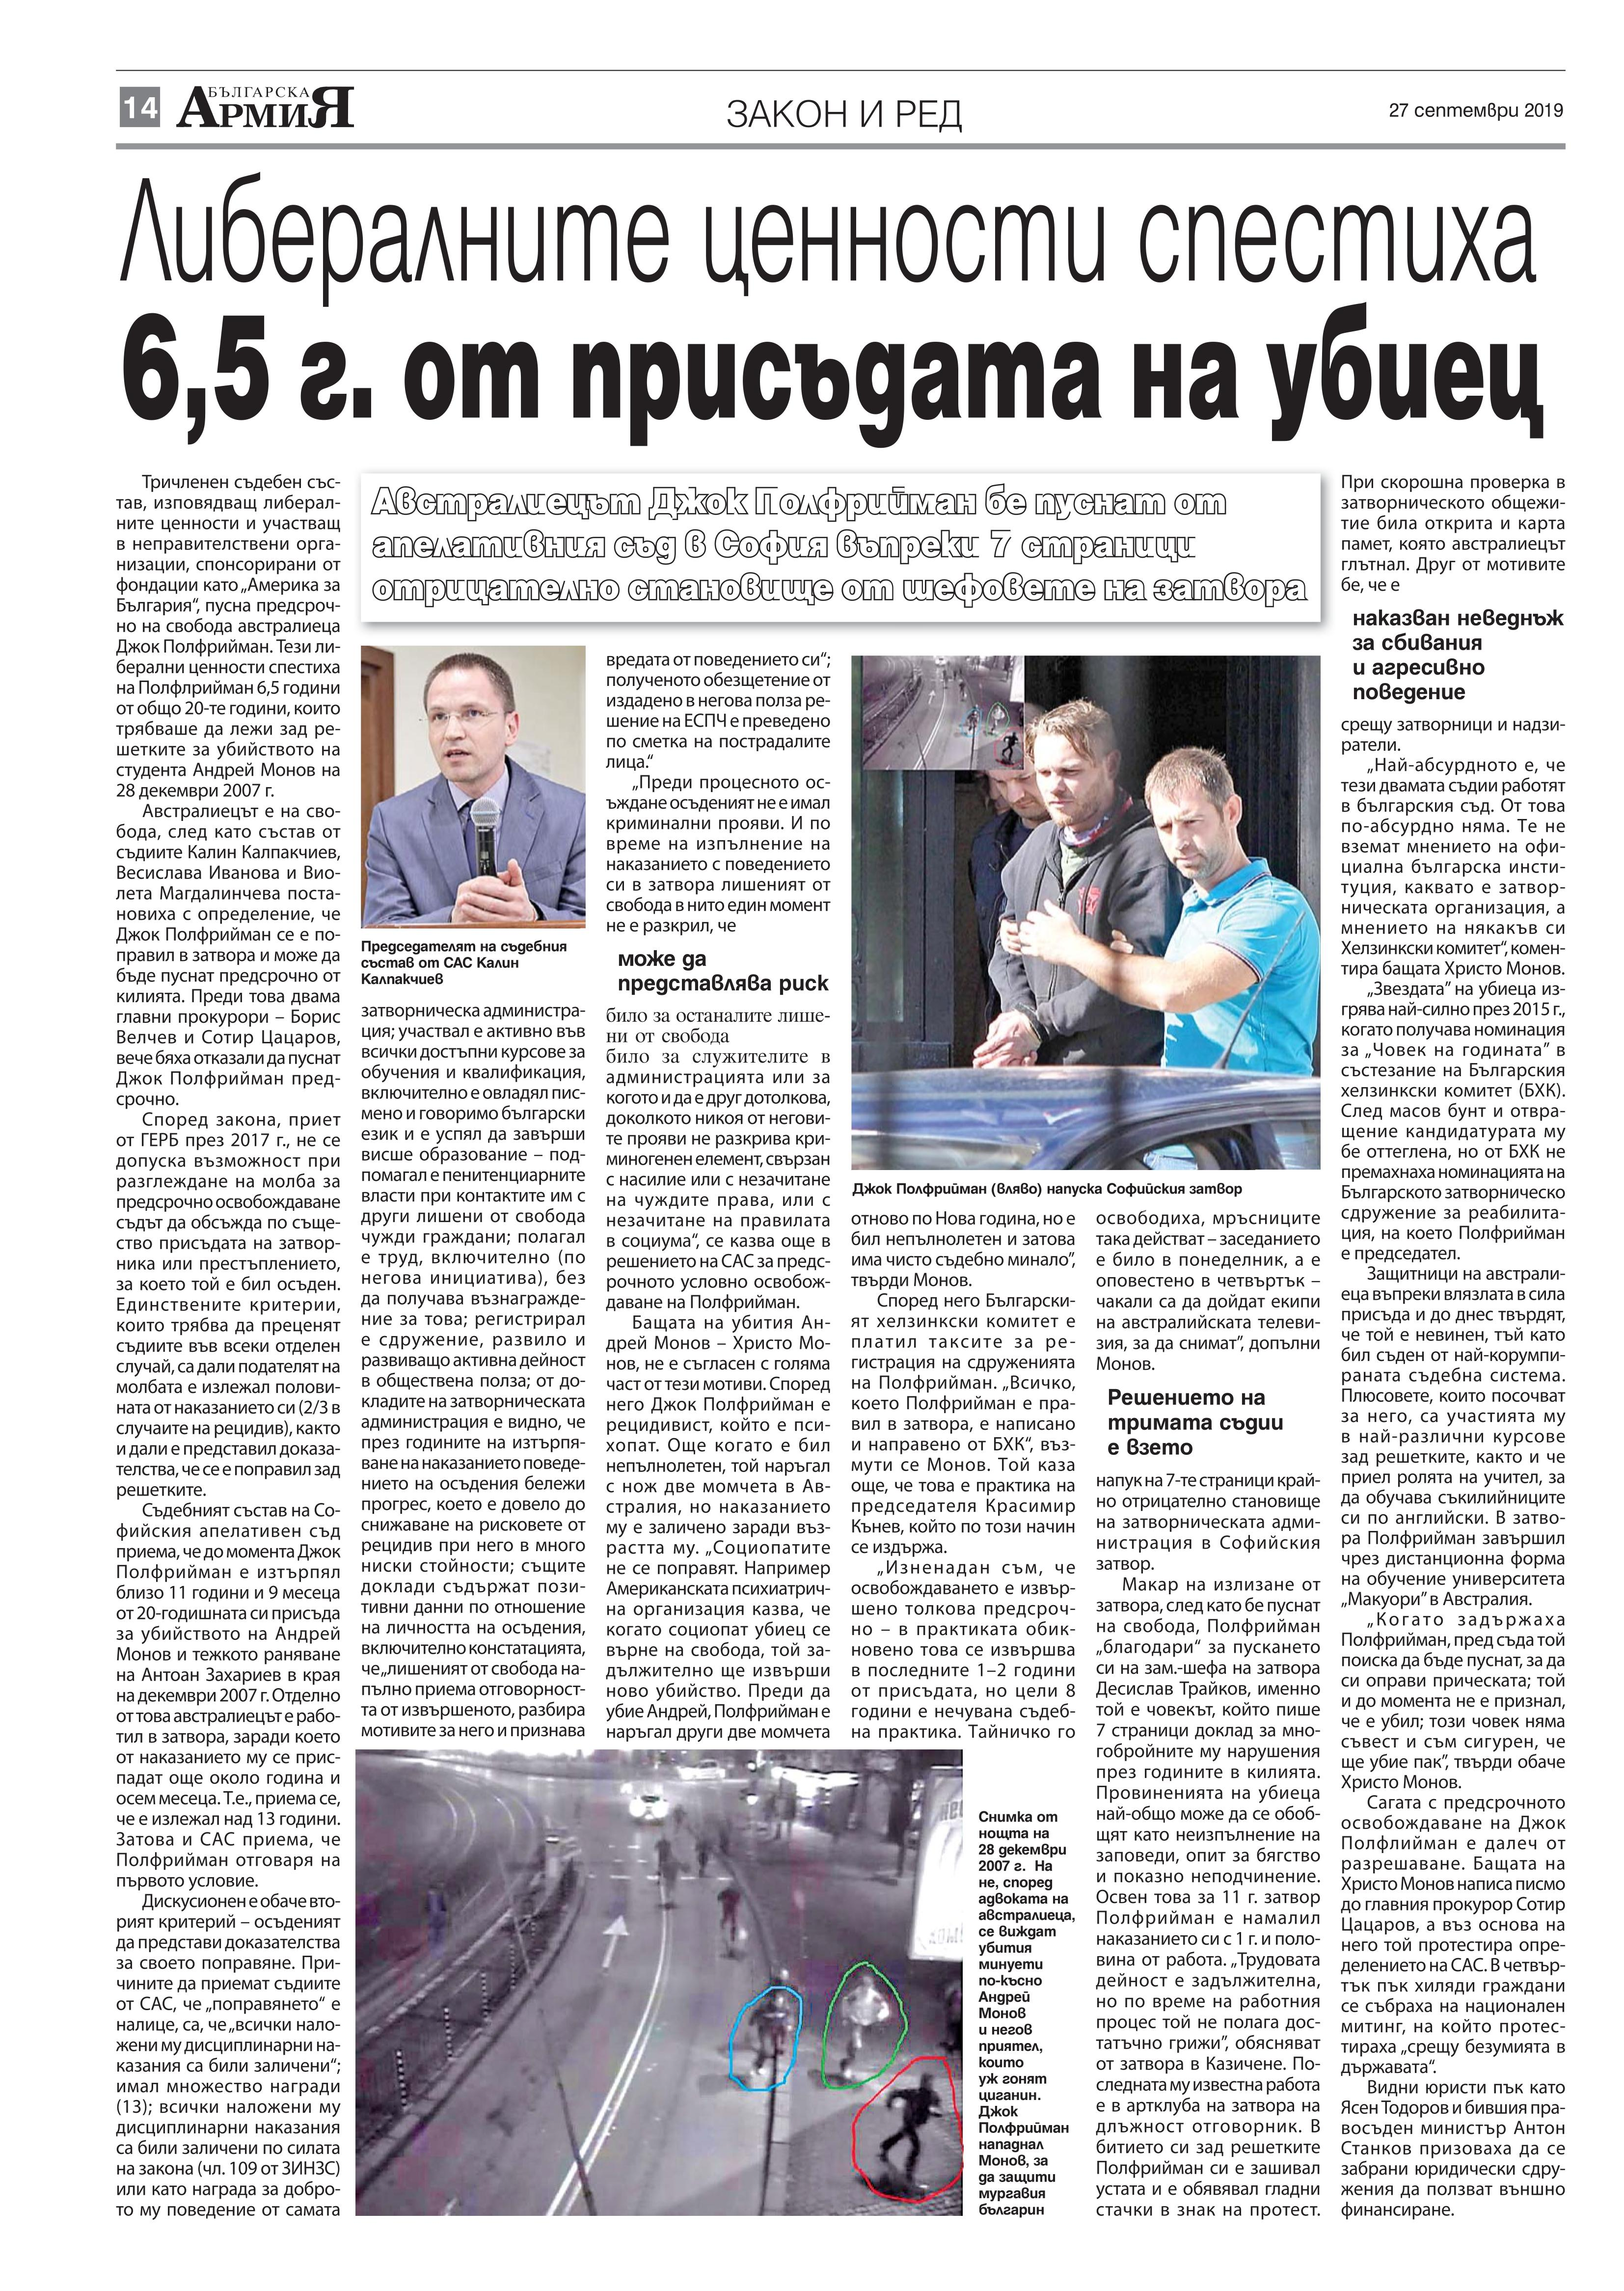 https://www.armymedia.bg/wp-content/uploads/2015/06/14.page1_-110.jpg